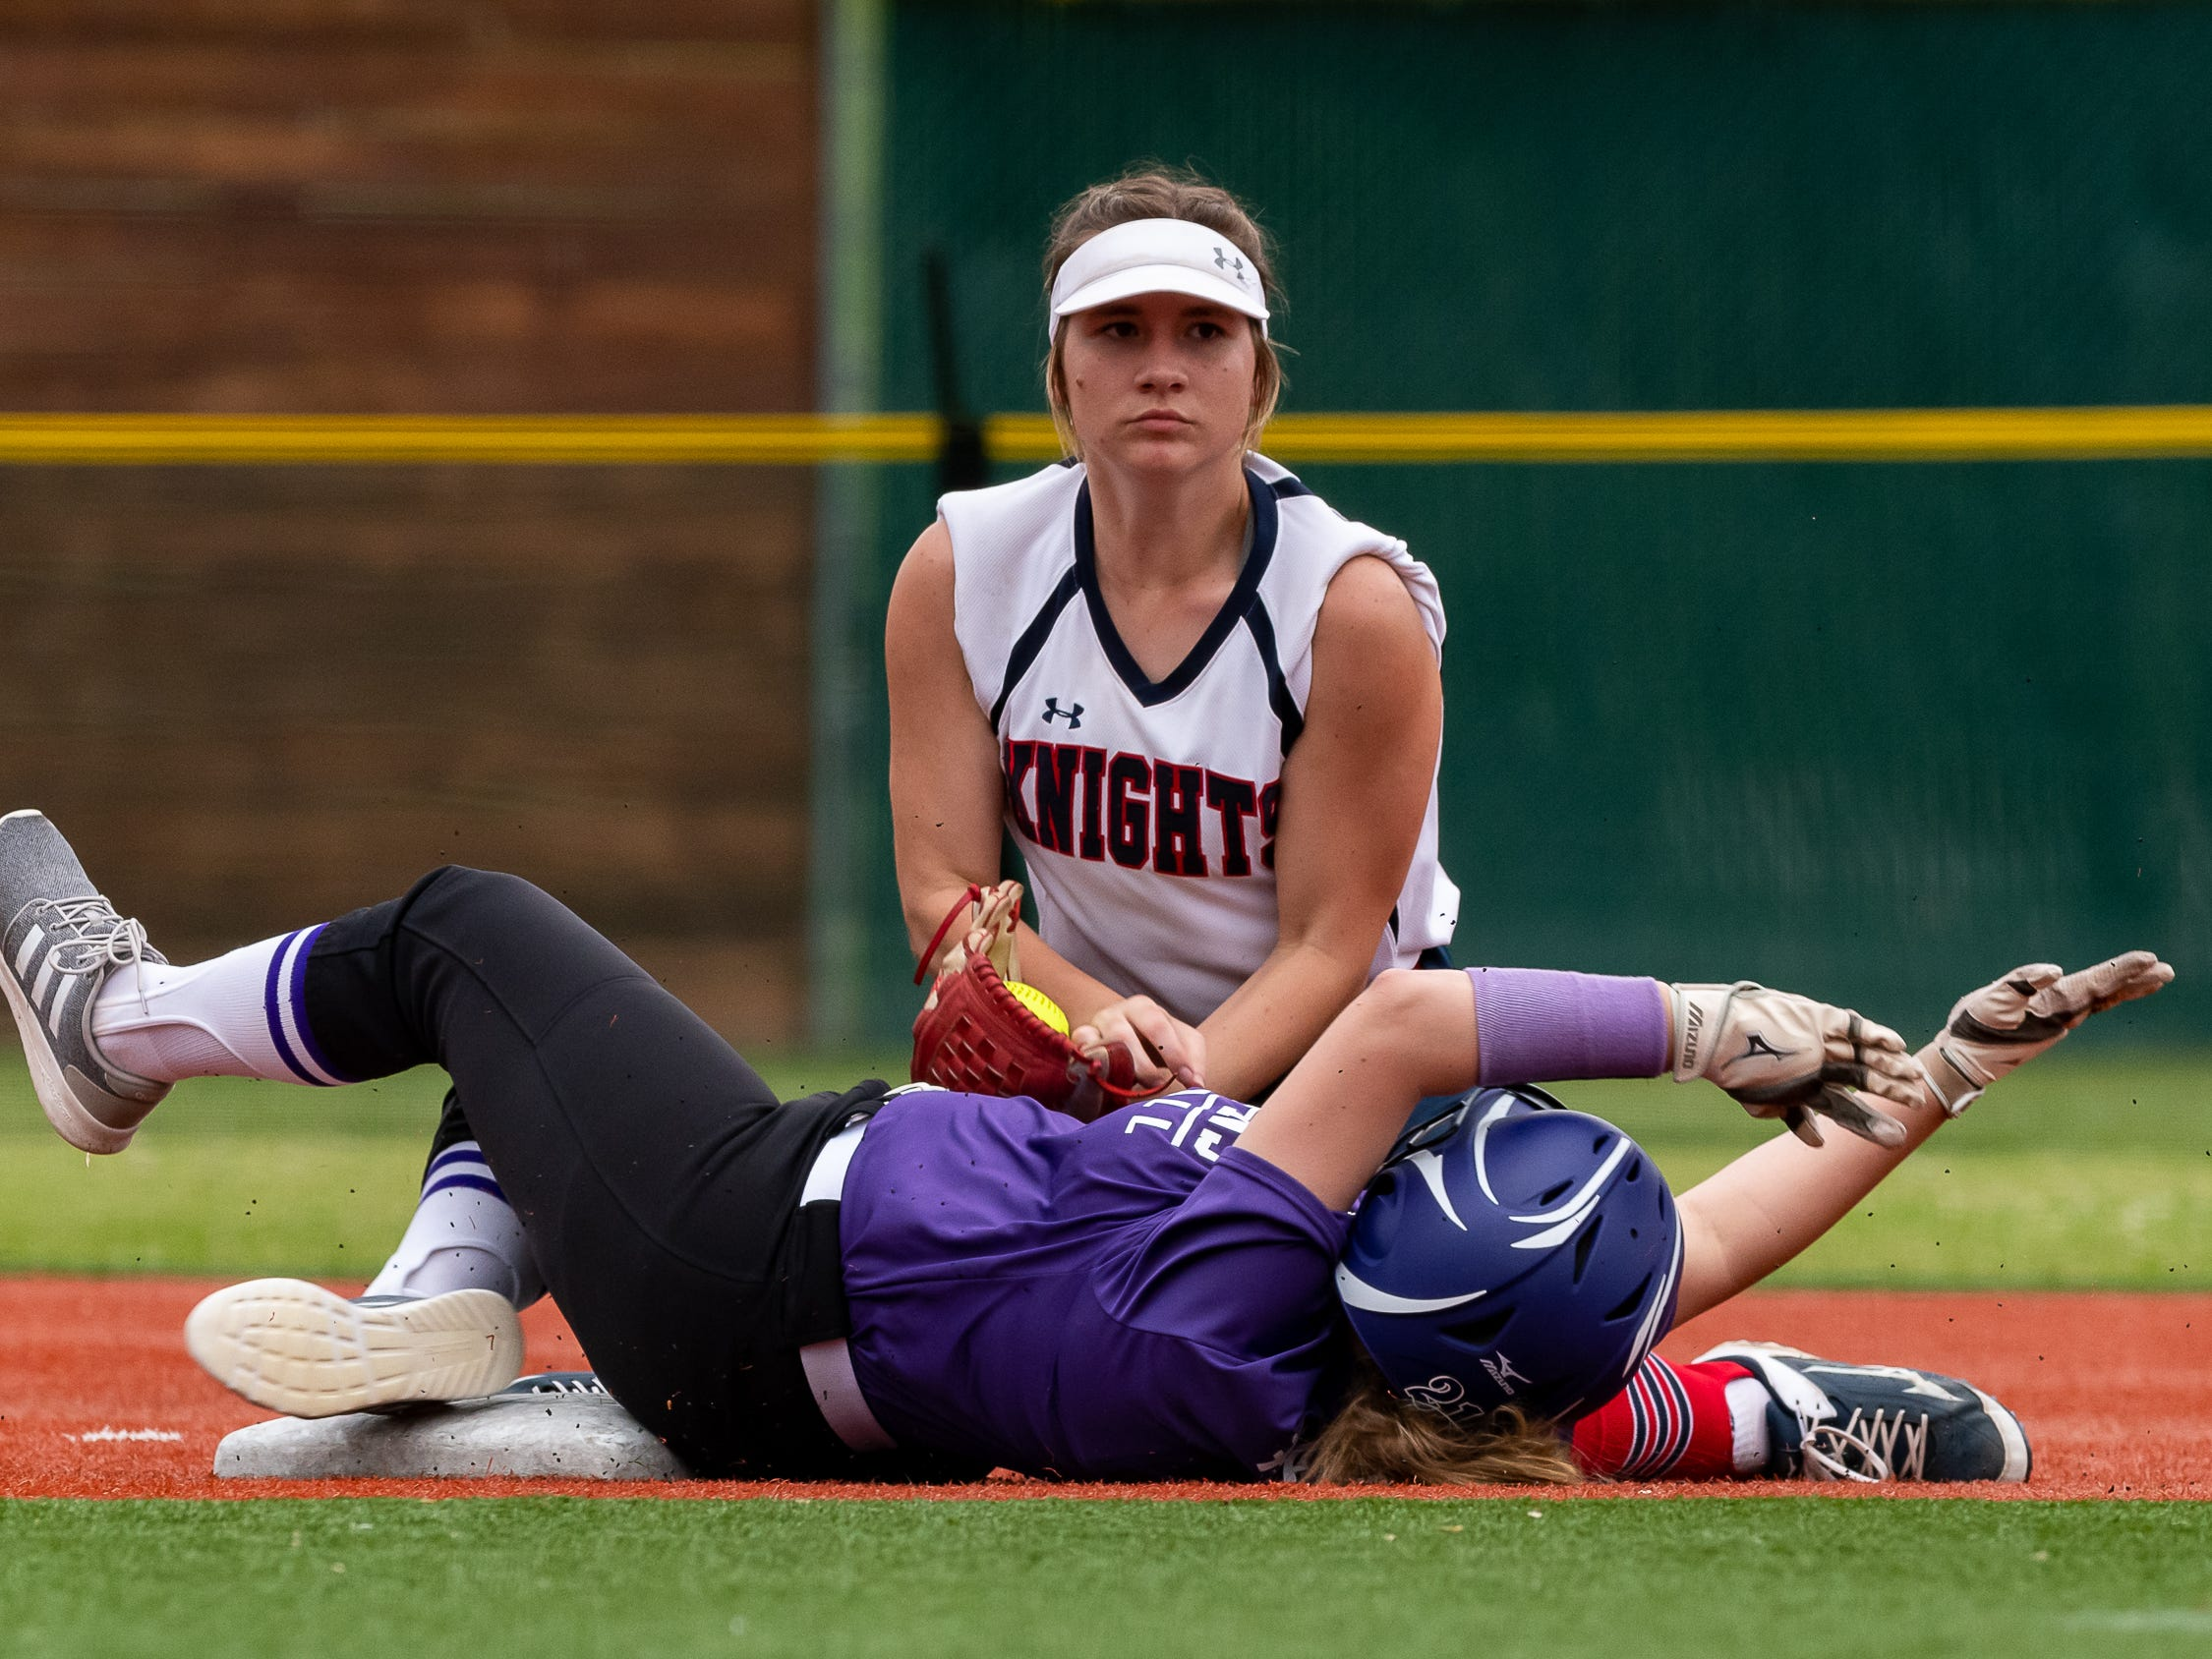 Lafayette Christian Academy softball takes on University Academy in the forst round of the LHSAA playoffs. Friday, April 12, 2019.